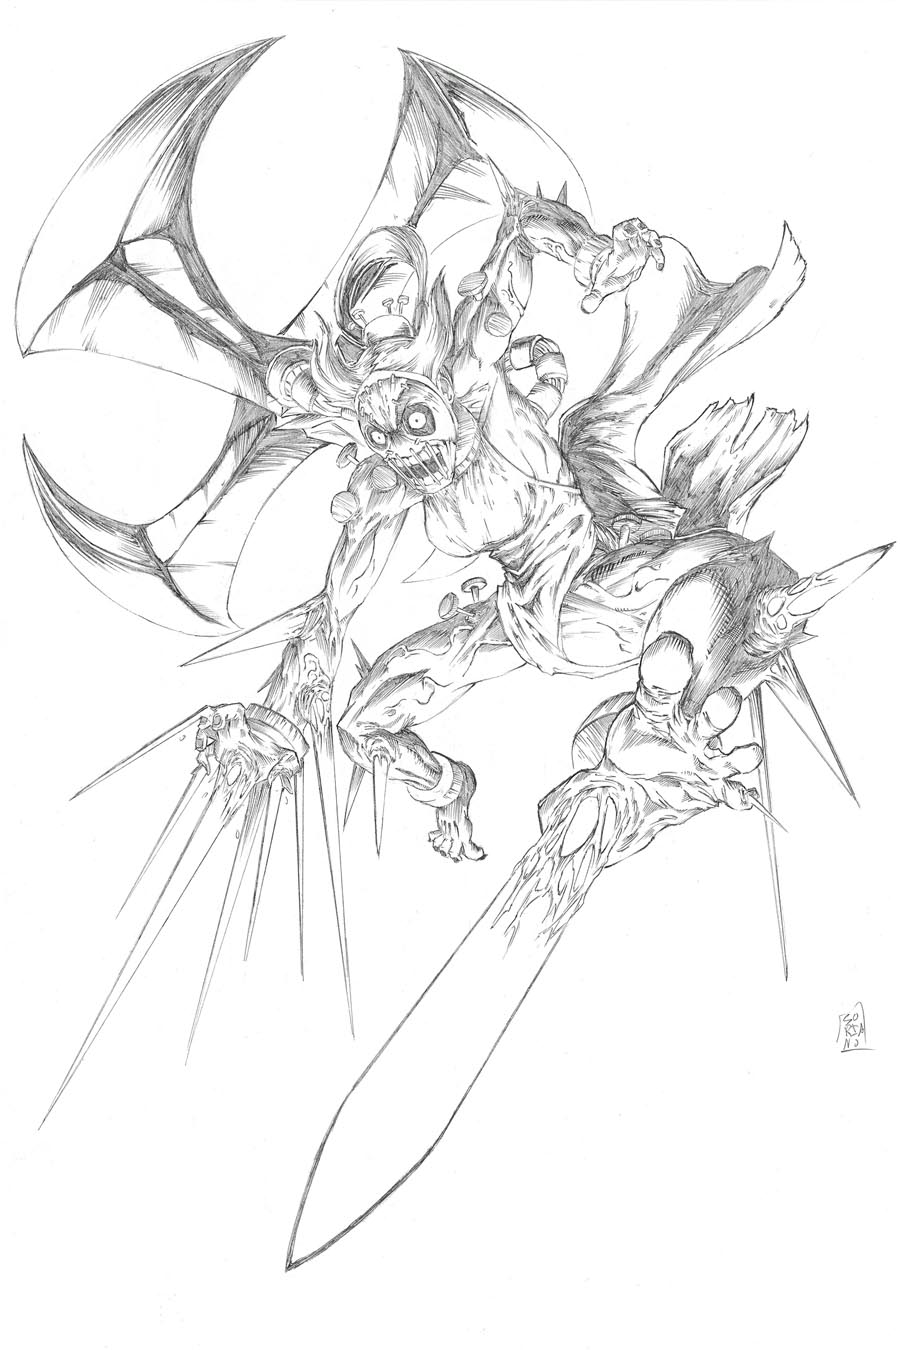 painwheel_pinup_small_2_by_briansoriano-d62vlcp.jpg